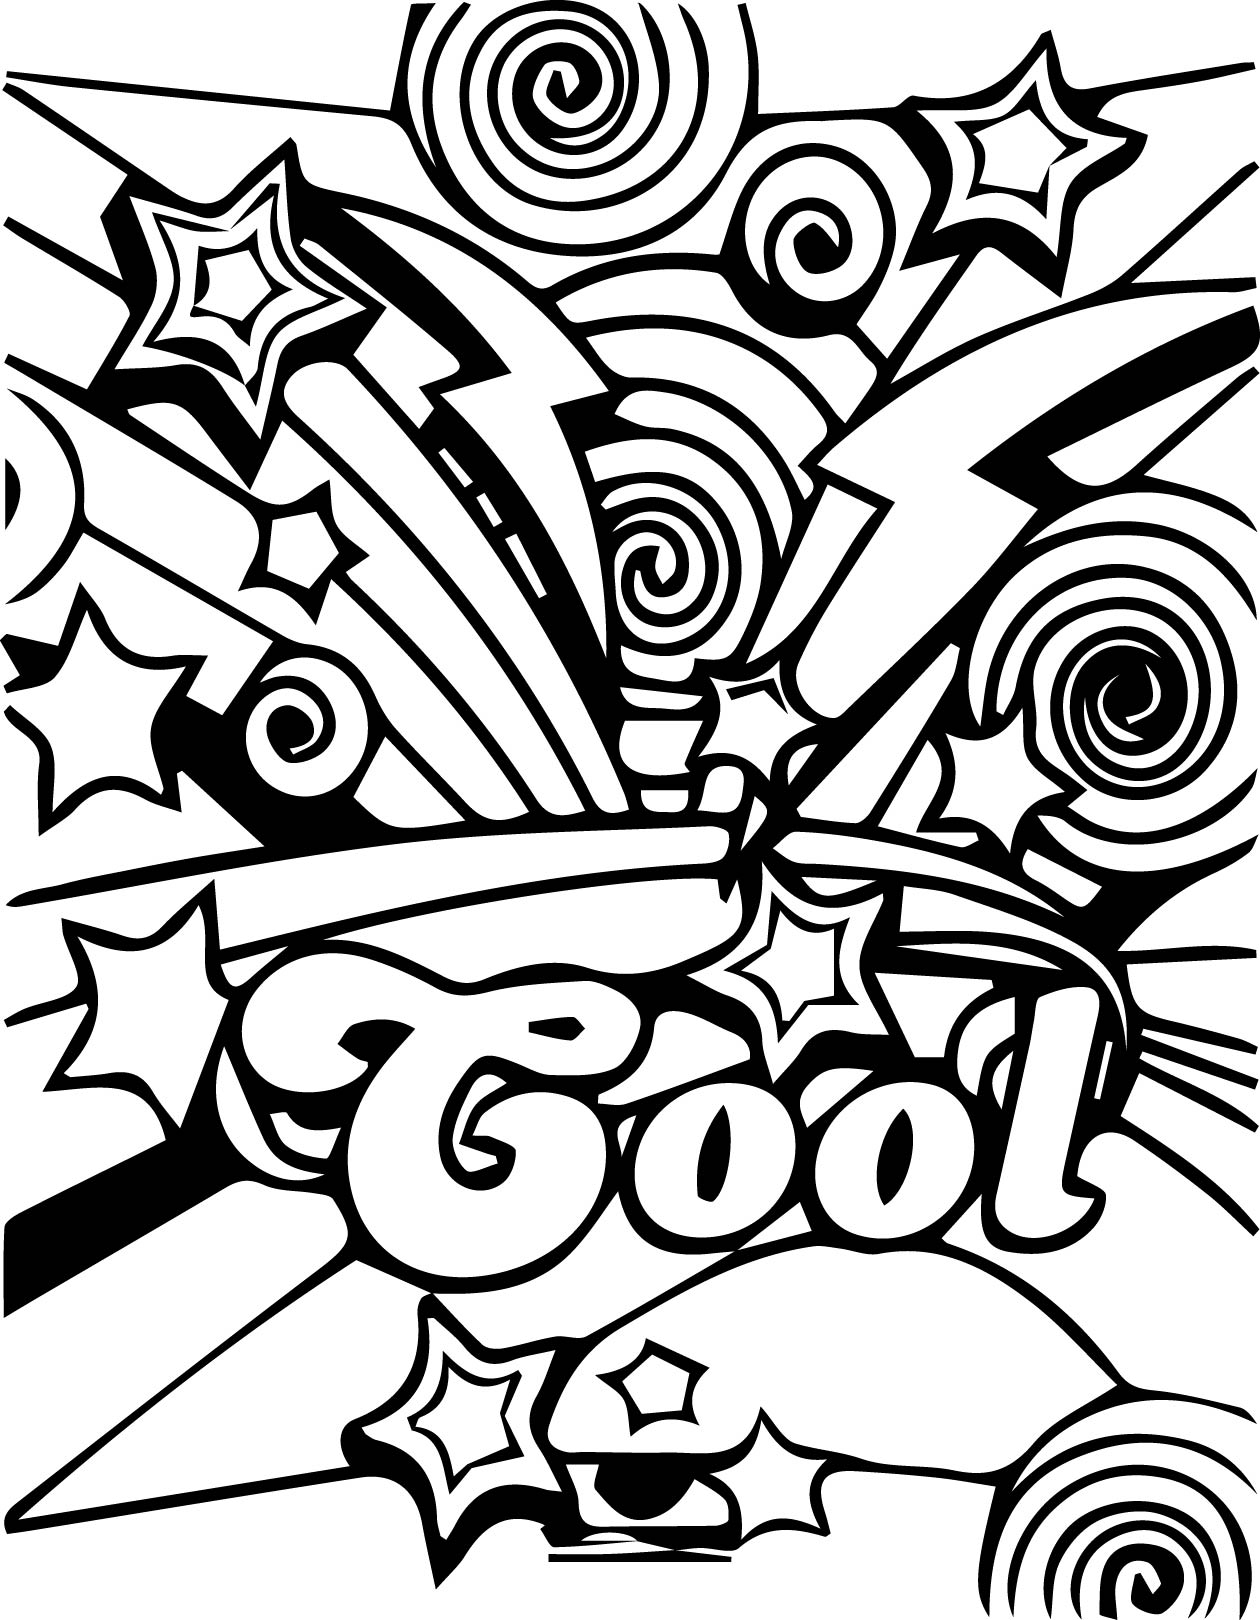 cool printable coloring pages for adults coloring pages adult coloring pages paisley hearts and coloring pages printable cool for adults